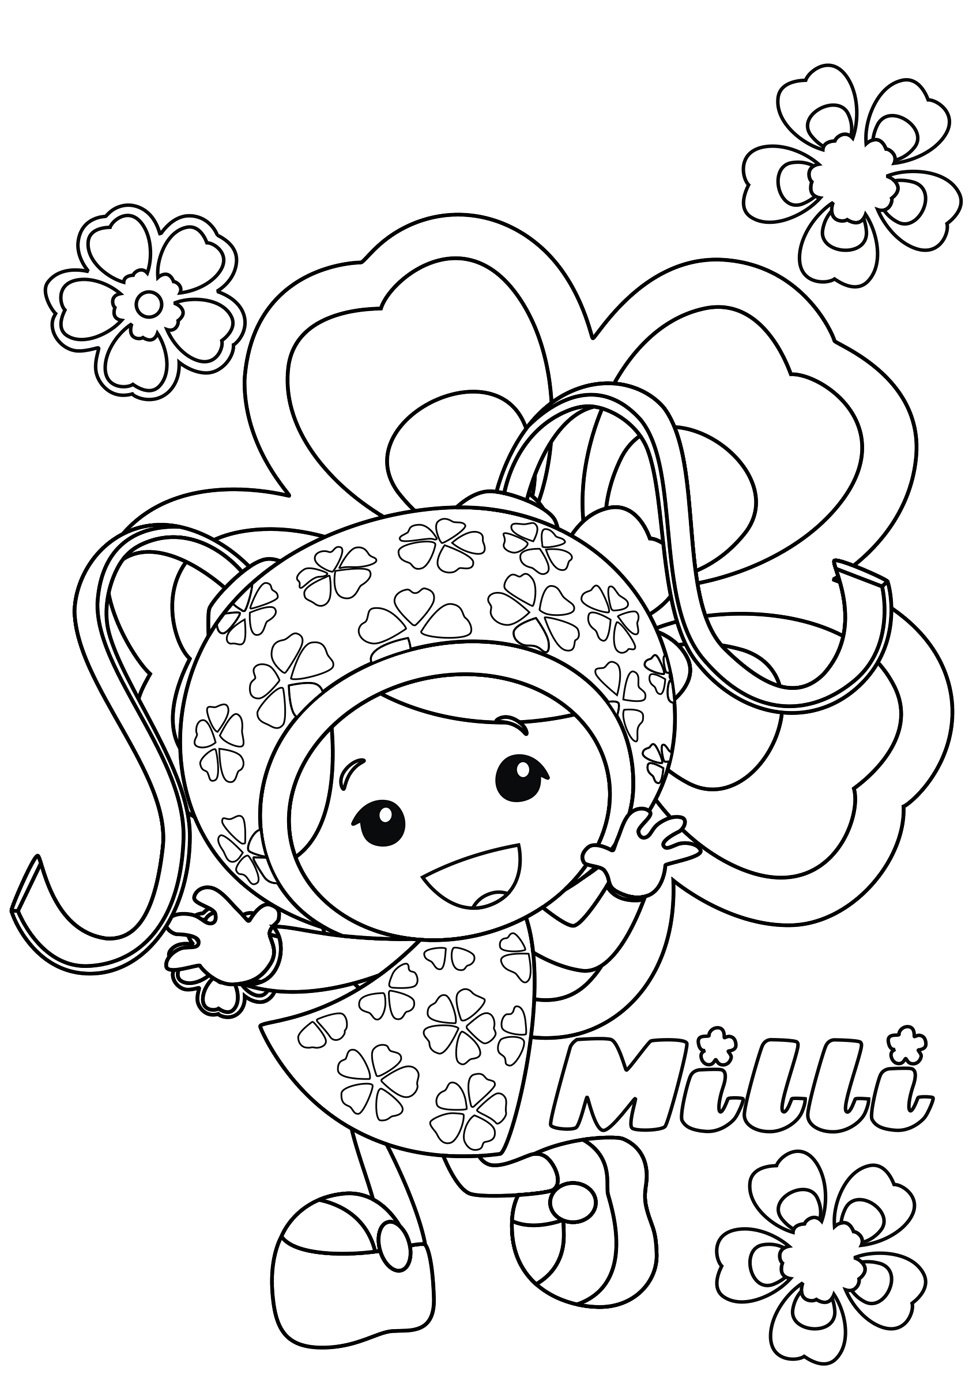 team coloring pages sport team kids coloring page wecoloringpagecom pages team coloring